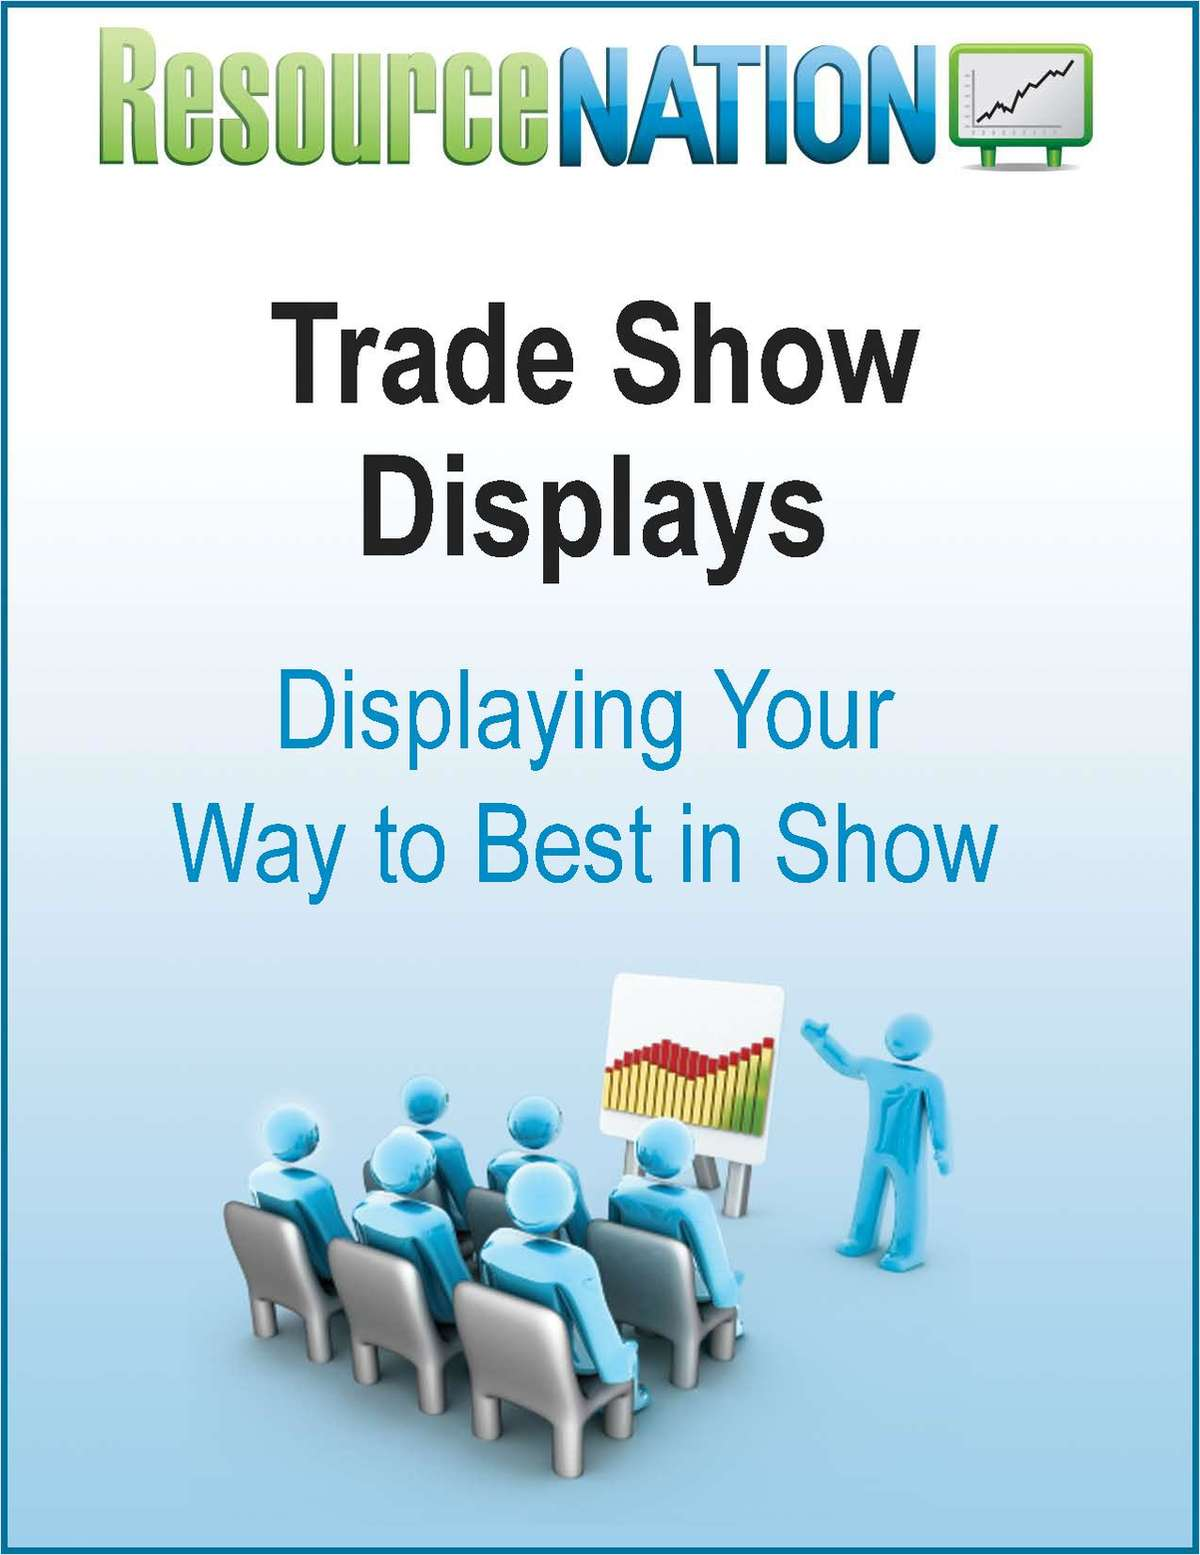 How to Make Your Trade Show Display Stand Out